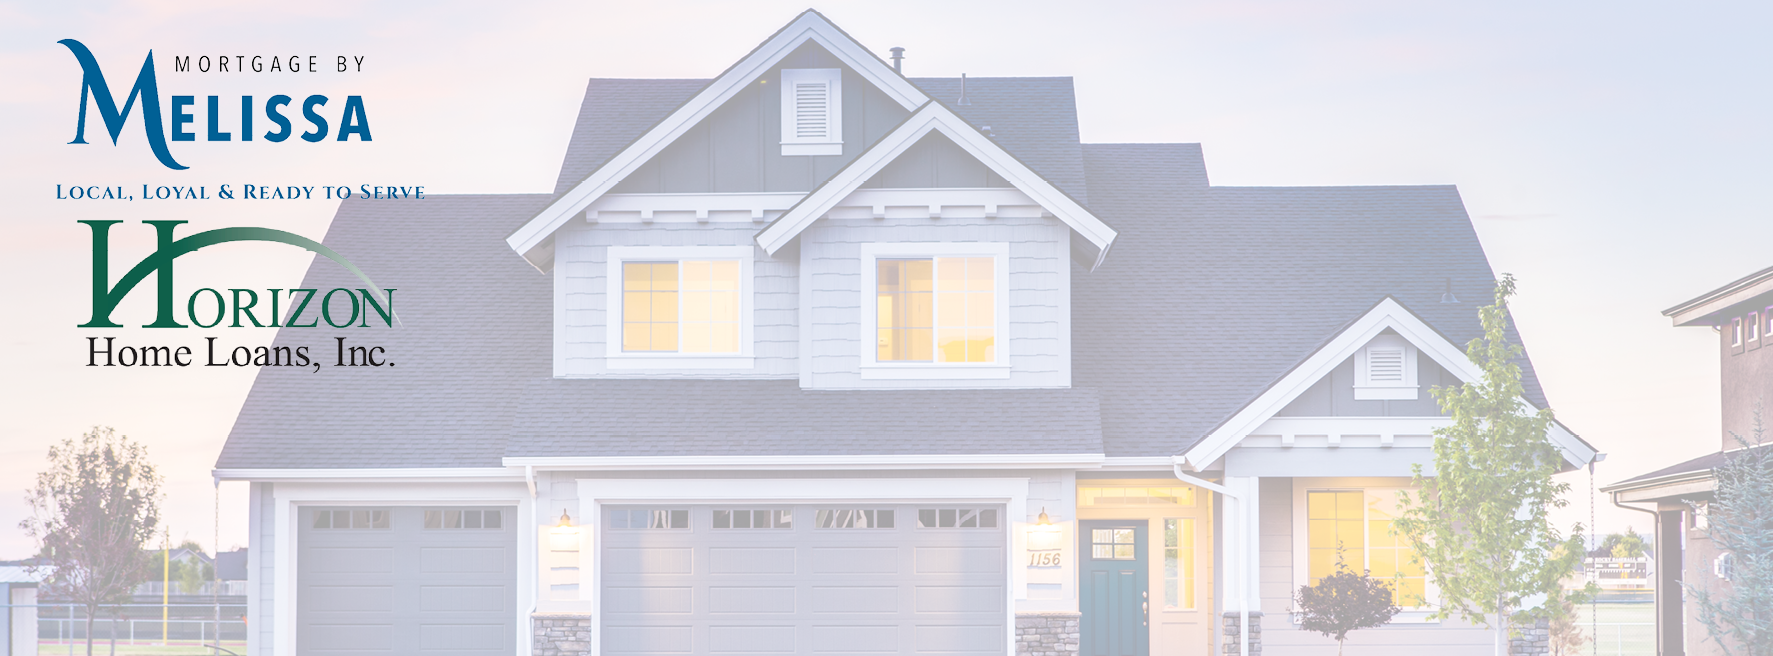 Facebook Cover for Mortgage by Melissa